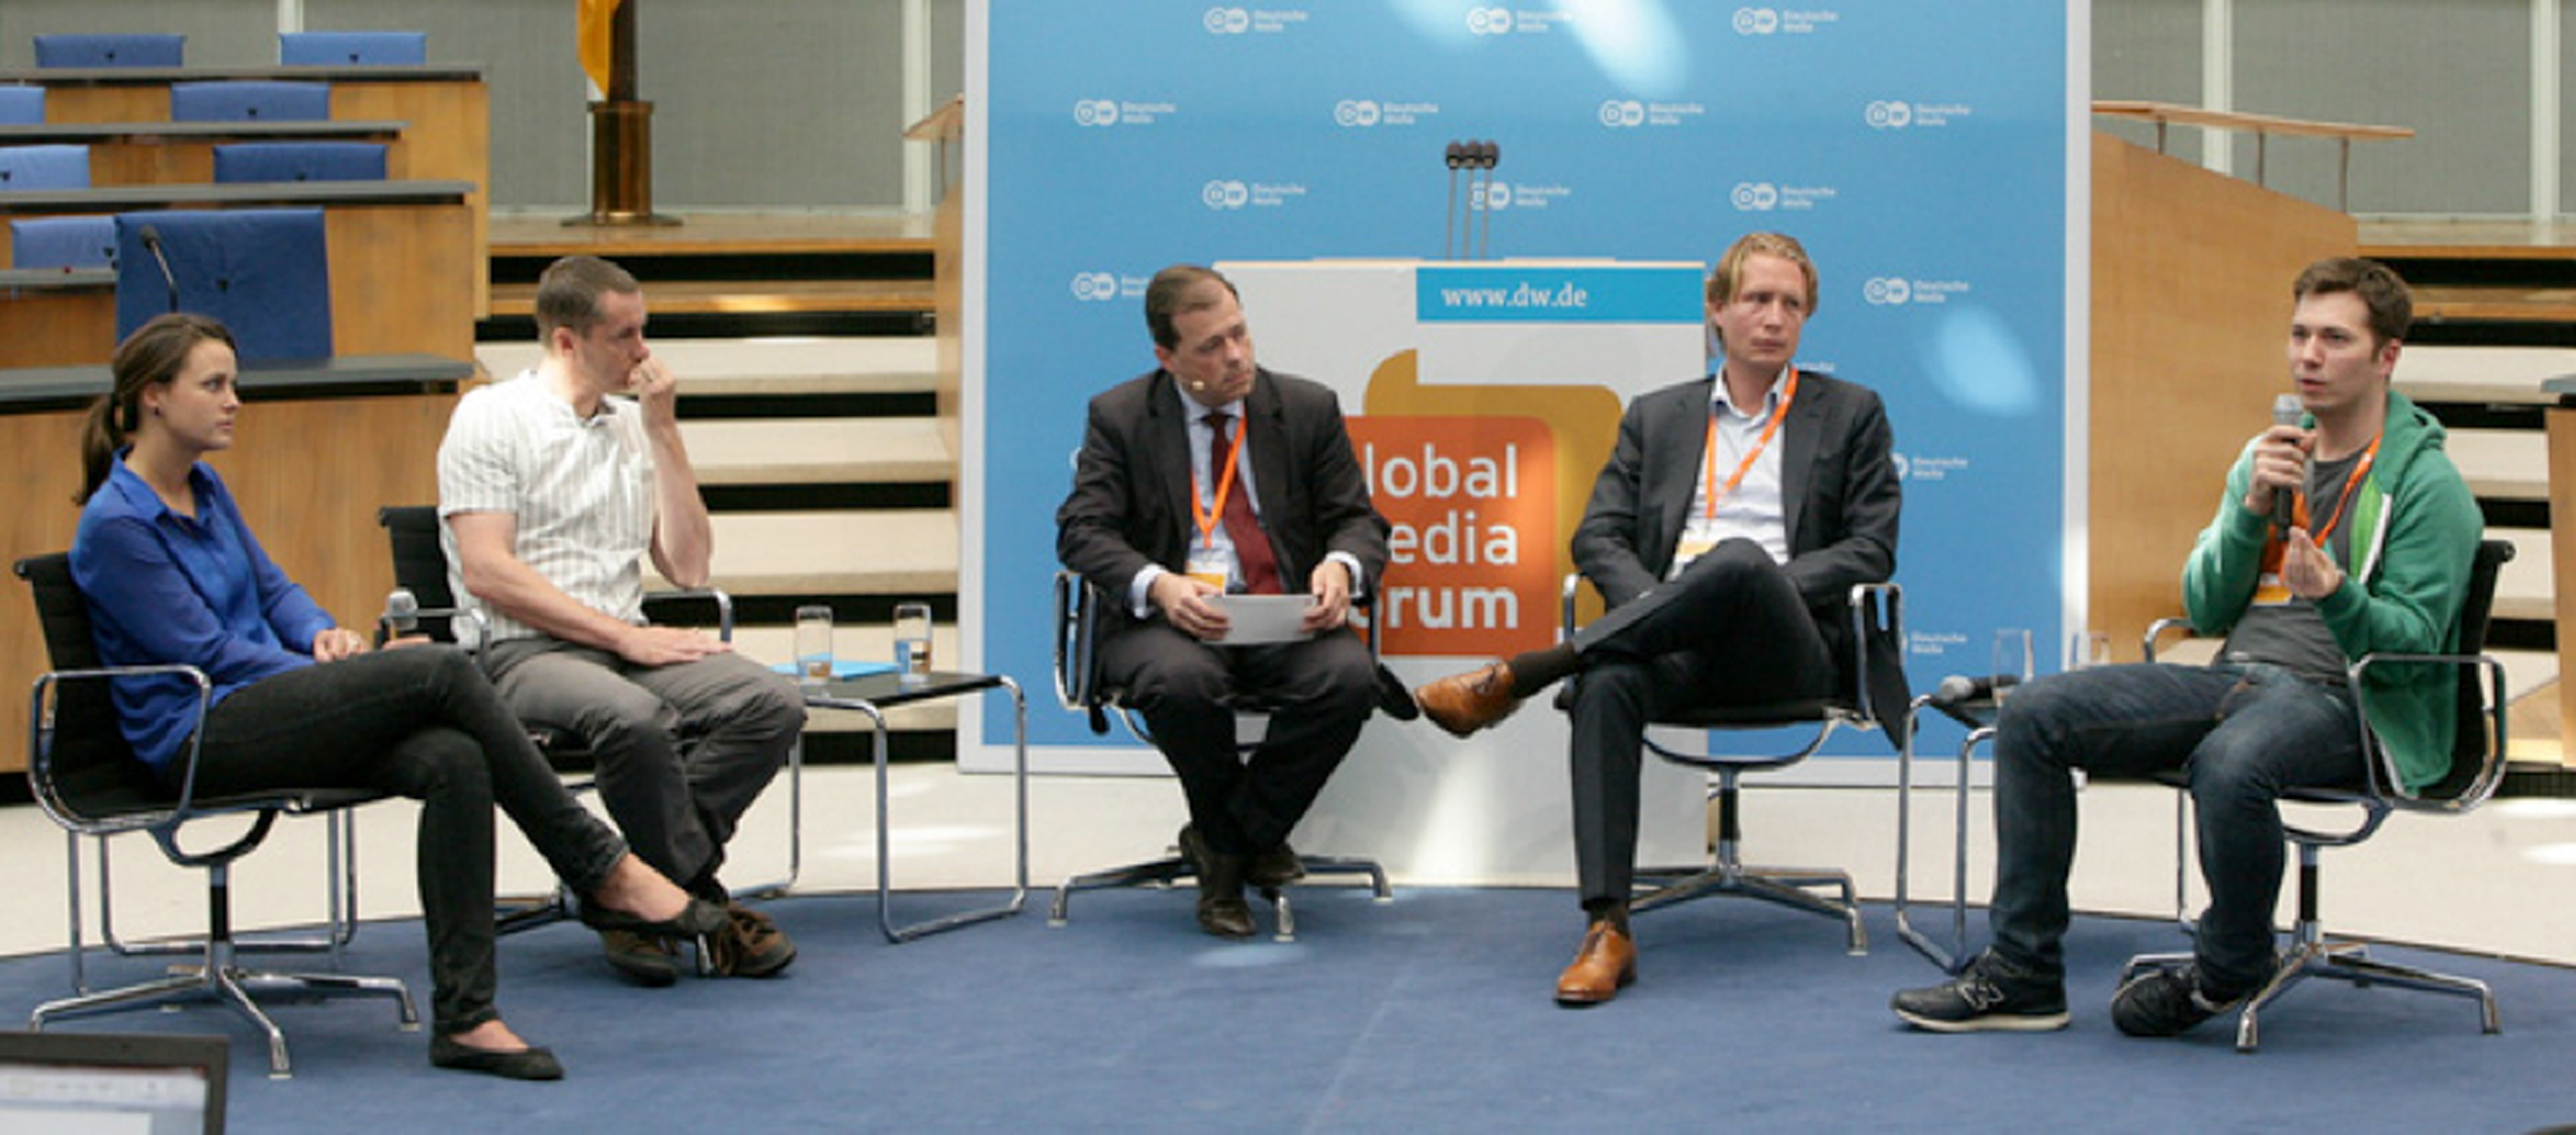 Panel discussion at the DW Global Media Forum